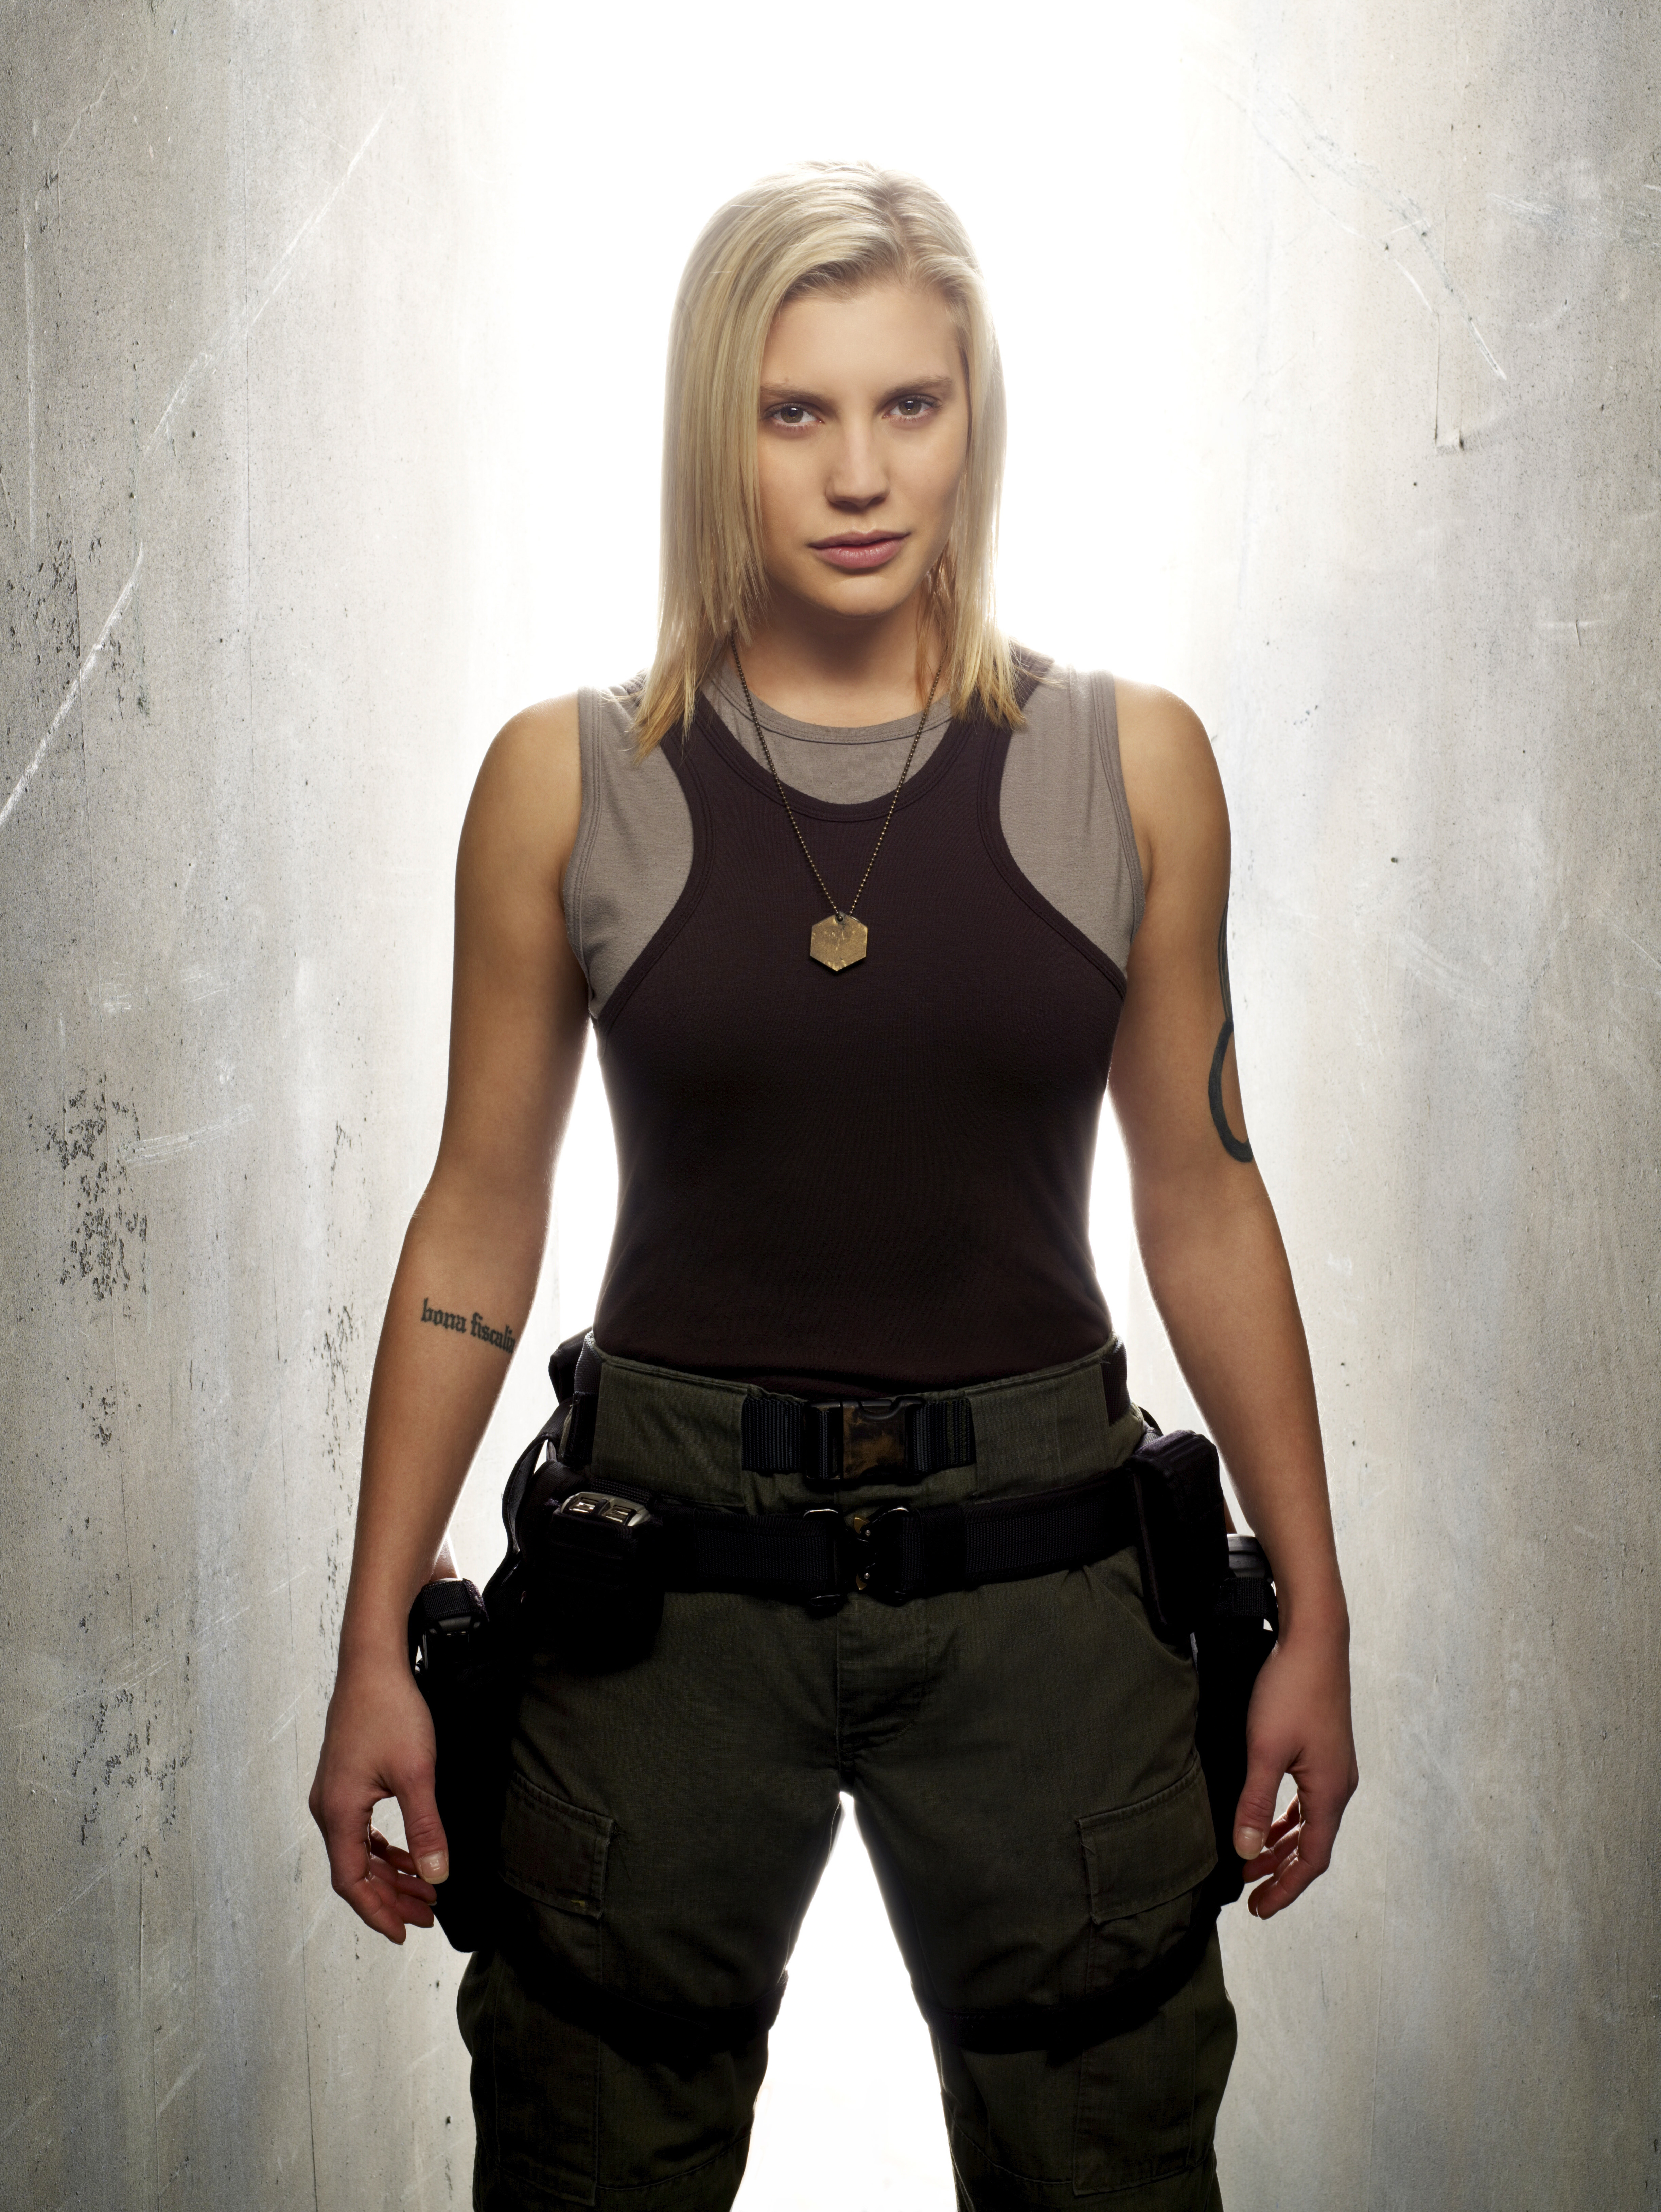 blondes battlestar galactica katee HD Wallpaper